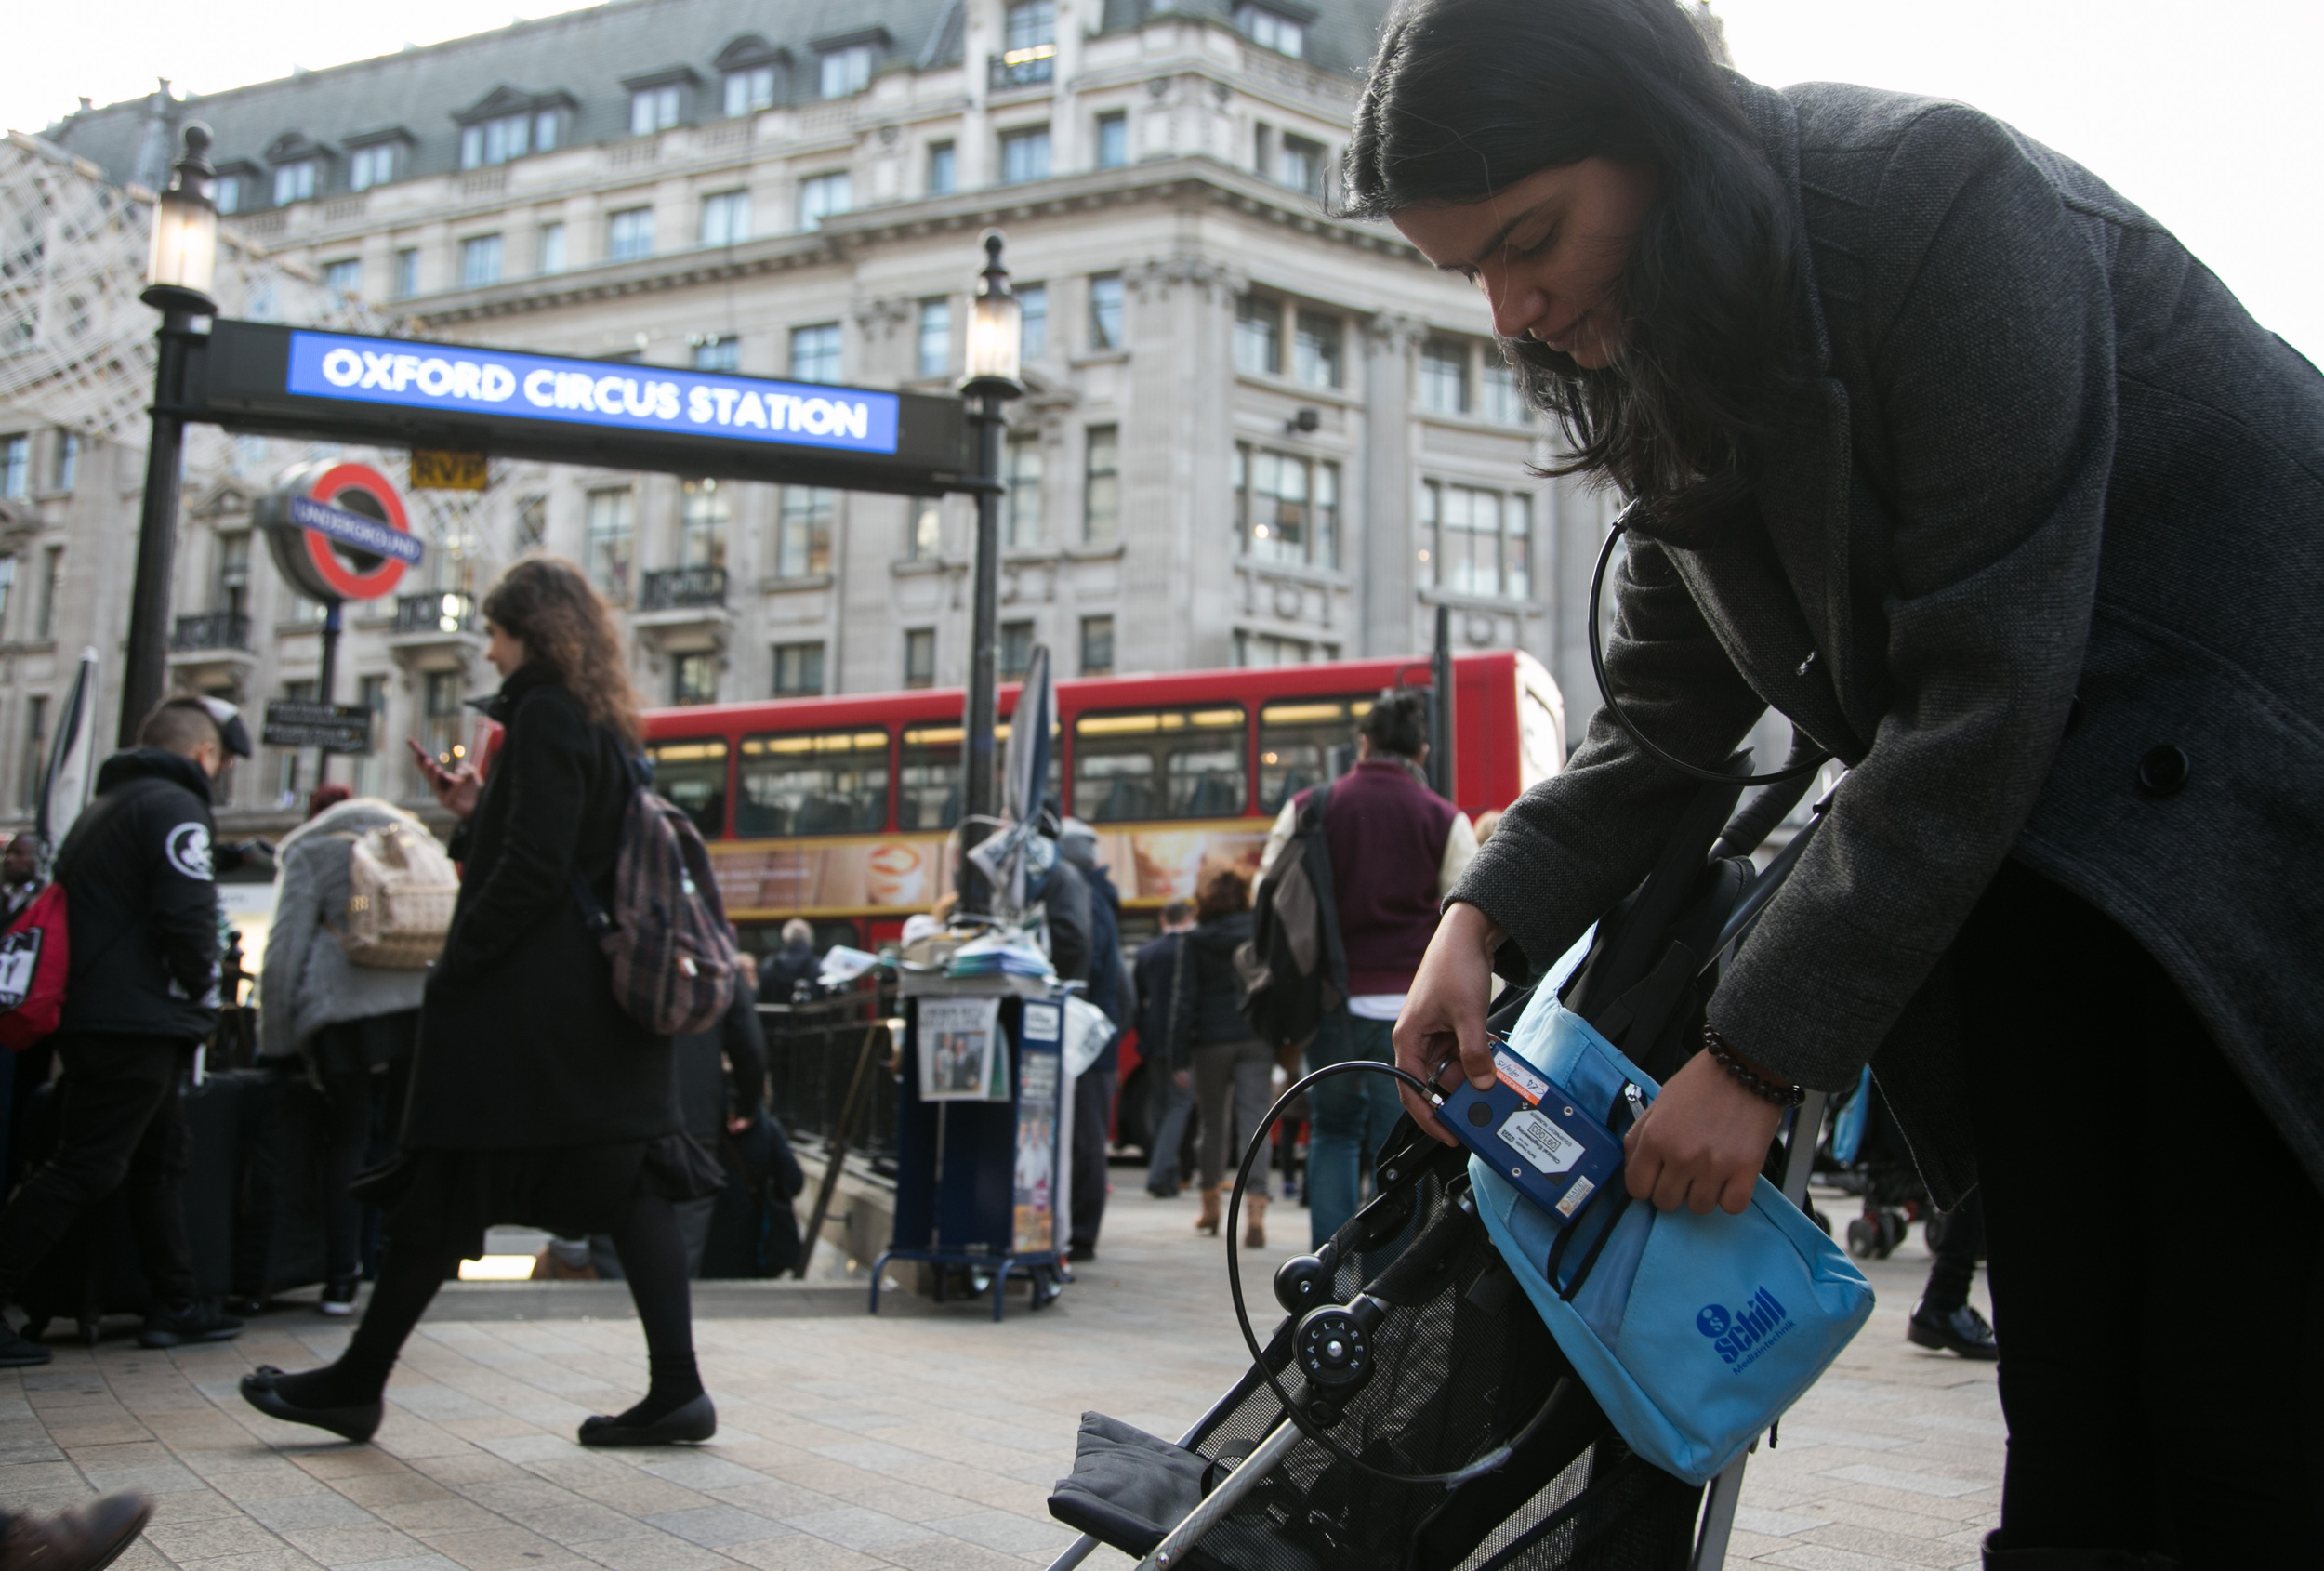 person with air pollution monitoring machine in London